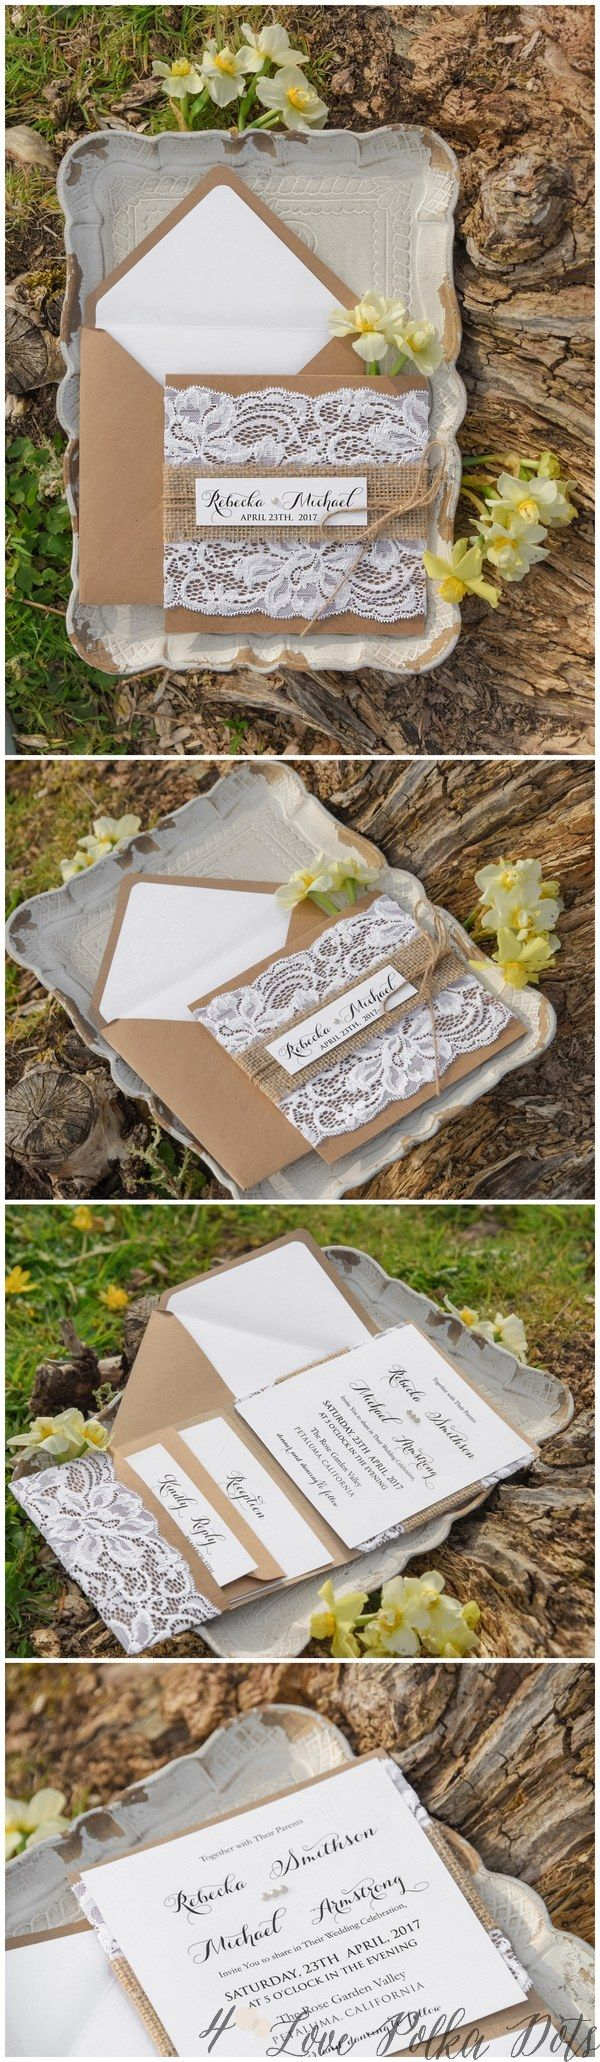 lace wedding invitation wrap%0A Rustic kraftr paper and lace wedding invitations  wedding  rustic  lace